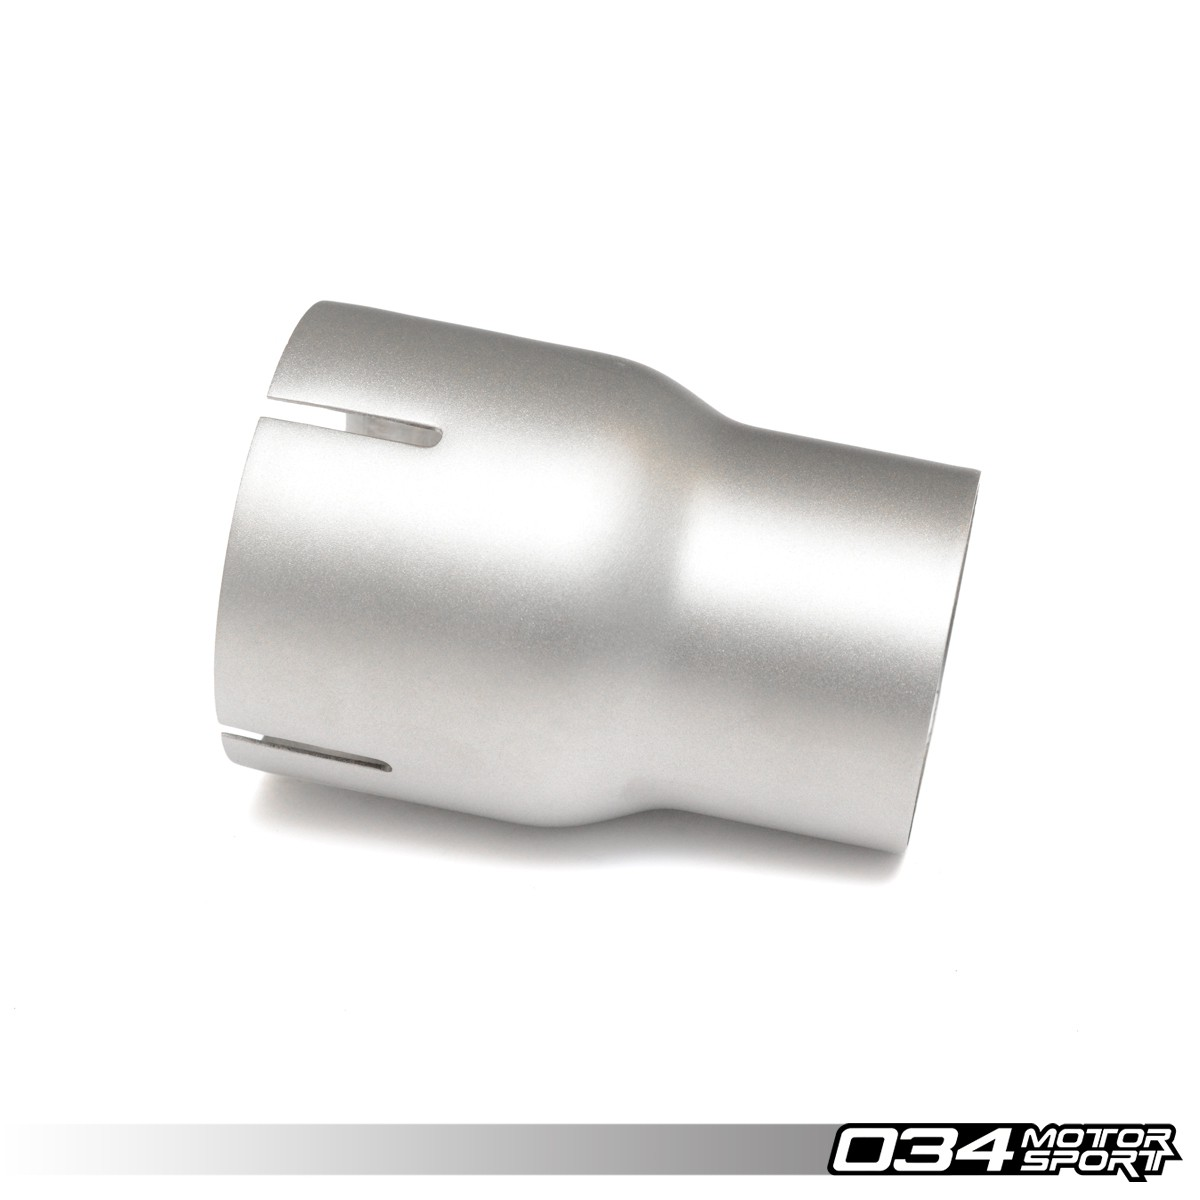 Cast Stainless Steel Performance Downpipe, 8V Audi A3/S3 & MkVII Volkswagen Golf/GTI/R